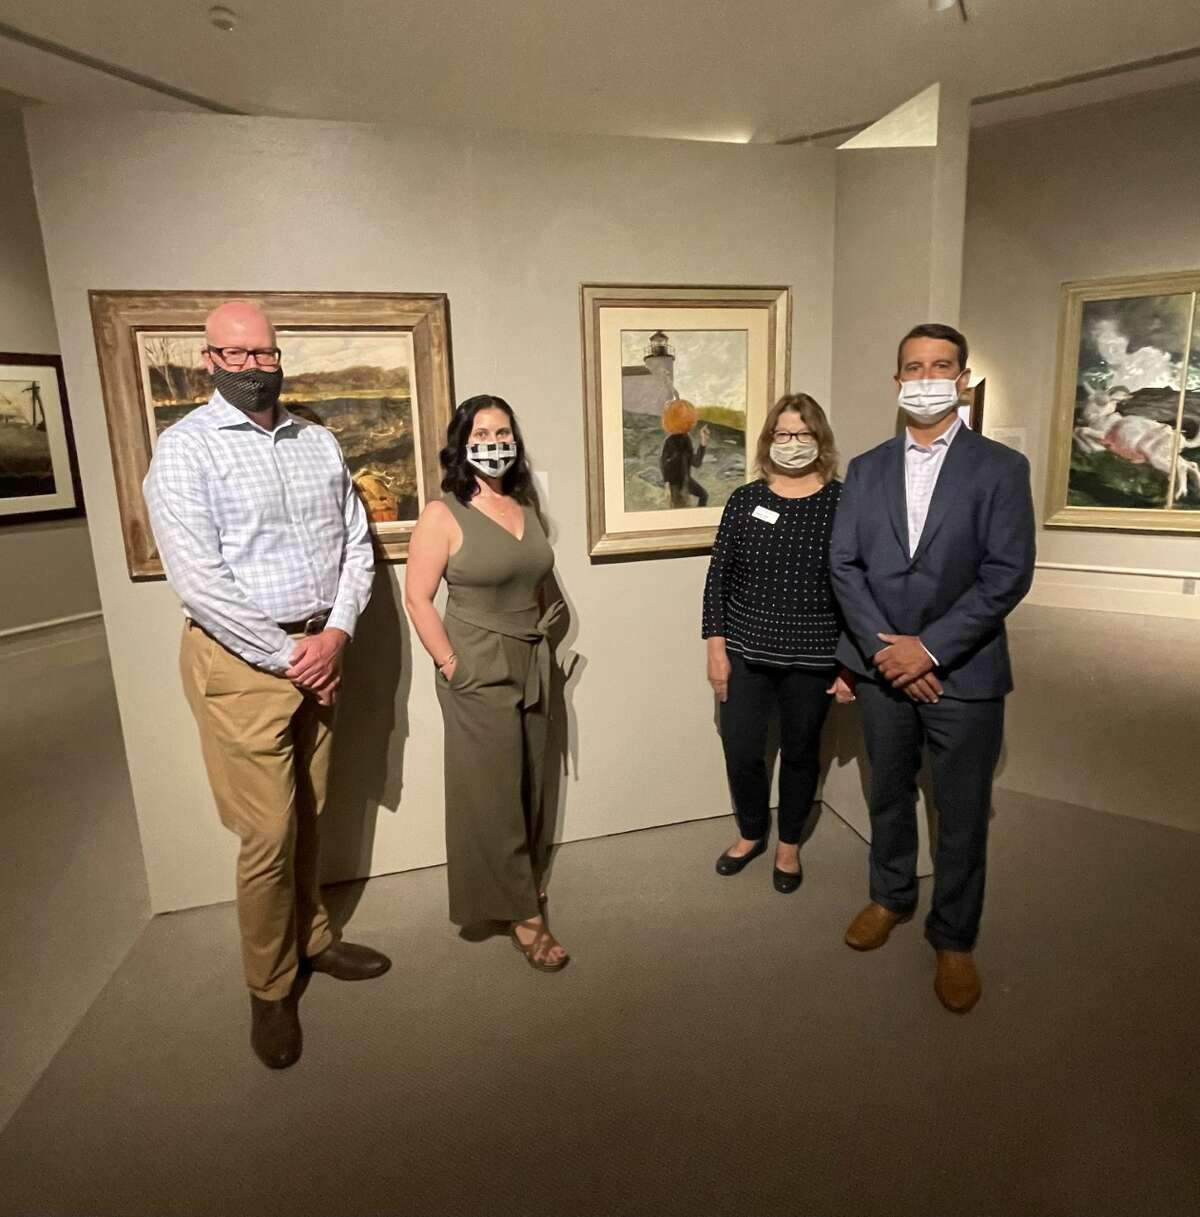 Left to right: Douglas McCombs, chief curator, Albany Institute of History & Art; Jillian Pasco, senior vice president of Albany/Hudson Valley market executive at Bank of America; Tammis K. Groft, executive director, AlbanyInstitute of History & Art; David Cornell, president, Bank of America Albany/Hudson Valley at the exhibitionThe Wyeths: Three Generations | Works from the Bank of America Collection, running through Jan. 2. (©2021 Jamie Wyeth / Artist Rights Society (ARS), New York)